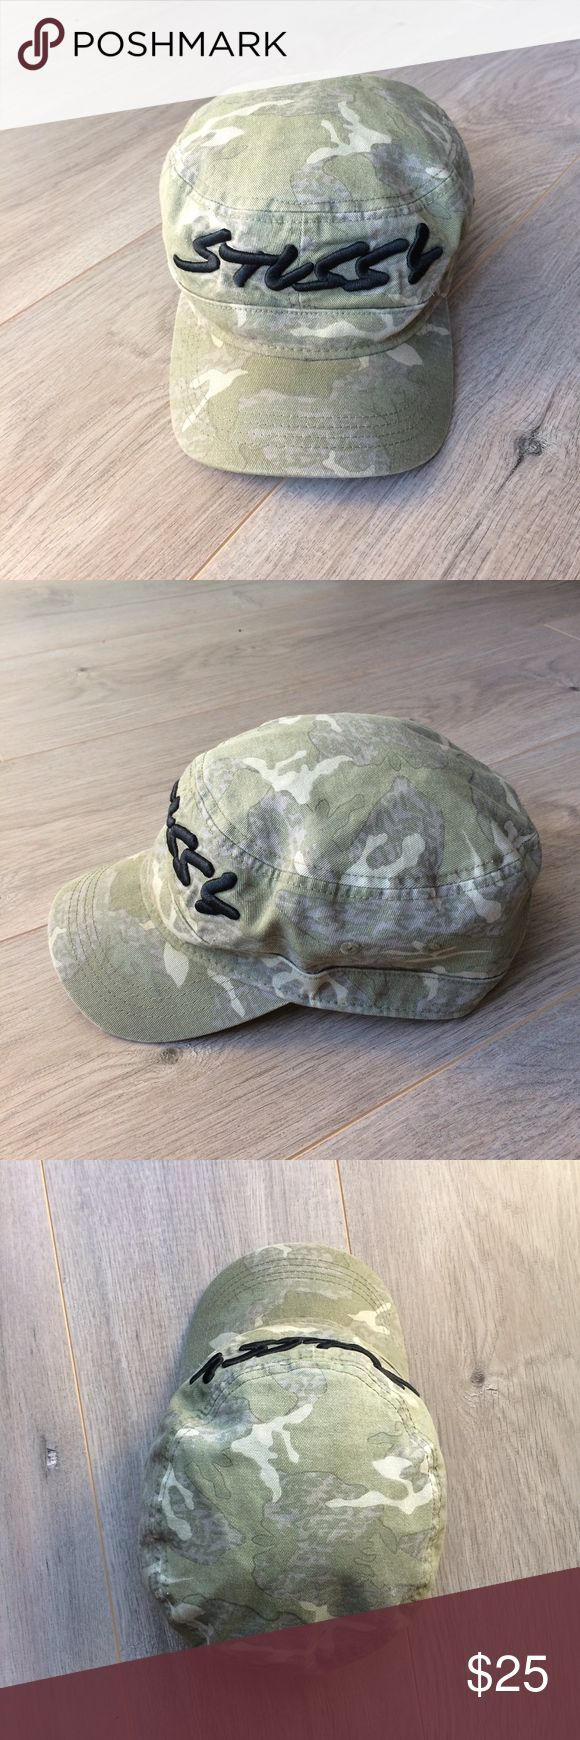 STUSSY Military Camo Army Hat Cap Camouflage Snap STUSSY Military Camo Army Hat Cap Embroidered Logo Camouflage Snapback  Great Pre-Owned Condition 100% Cotton Stussy Accessories Hats